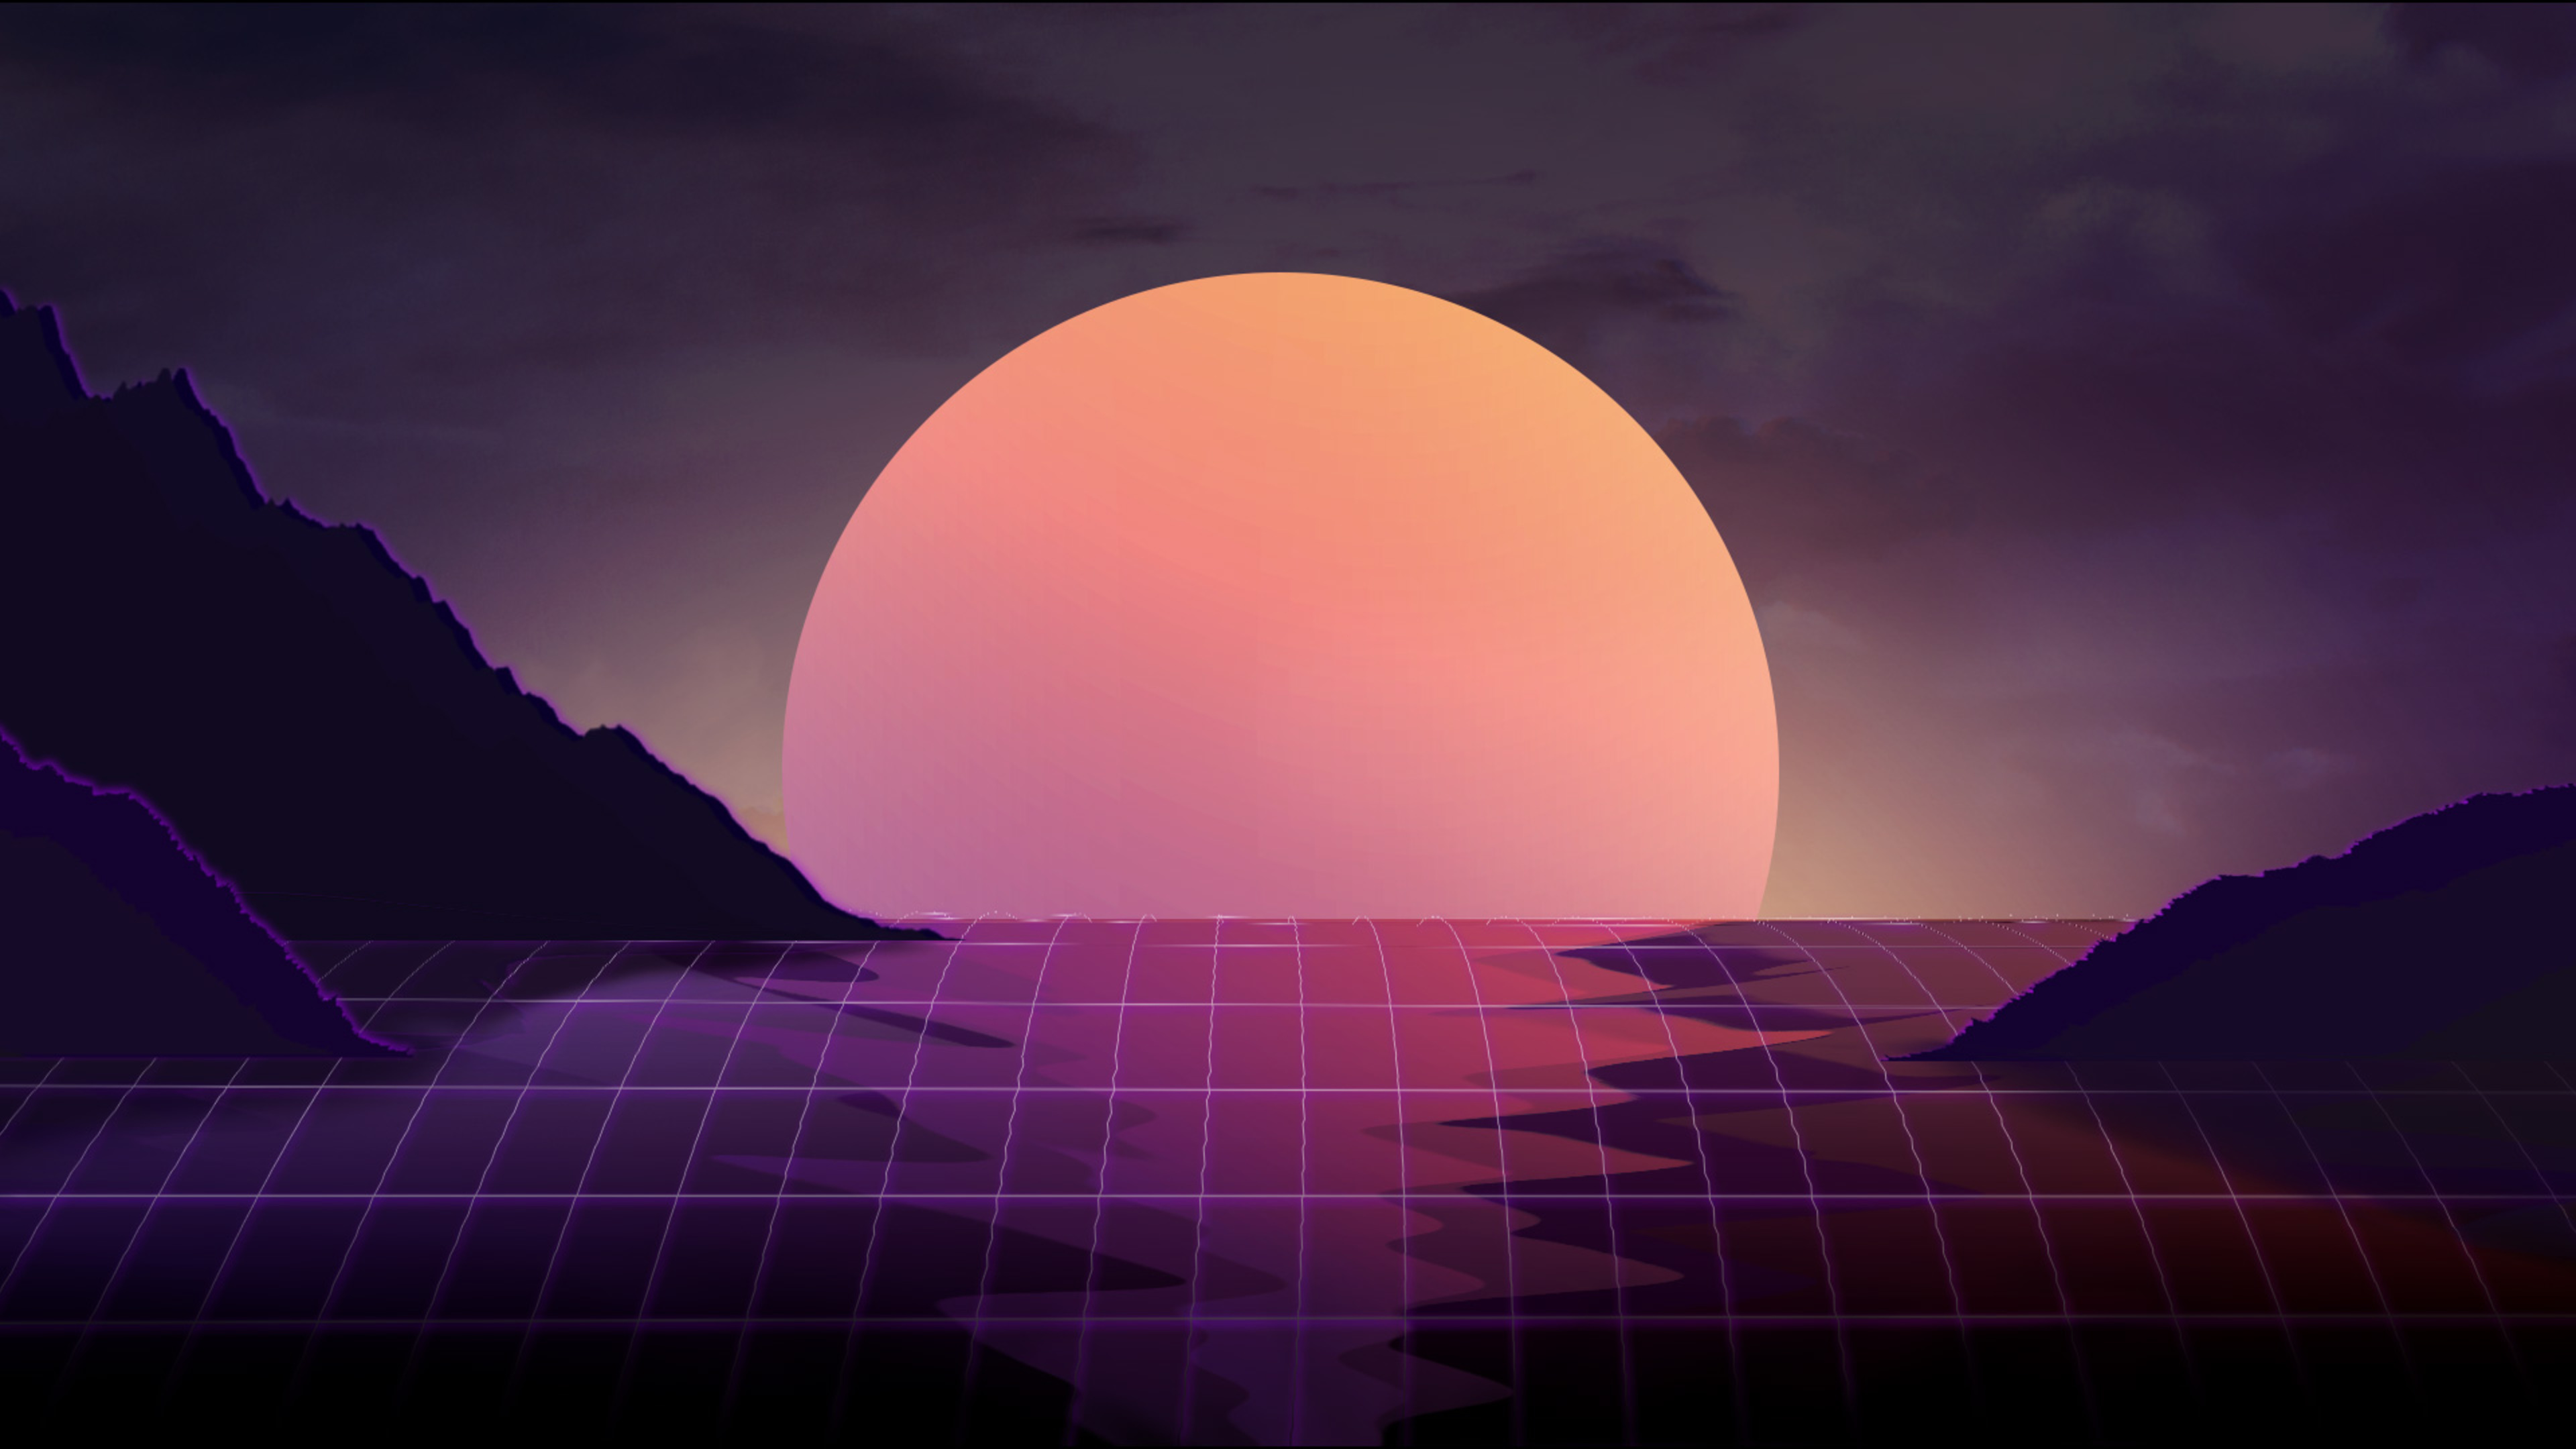 vapor wave sunset 4k 1540751389 - Vapor Wave Sunset 4k - wave wallpapers, sunset wallpapers, minimalism wallpapers, hd-wallpapers, digital art wallpapers, artwork wallpapers, artist wallpapers, 5k wallpapers, 4k-wallpapers